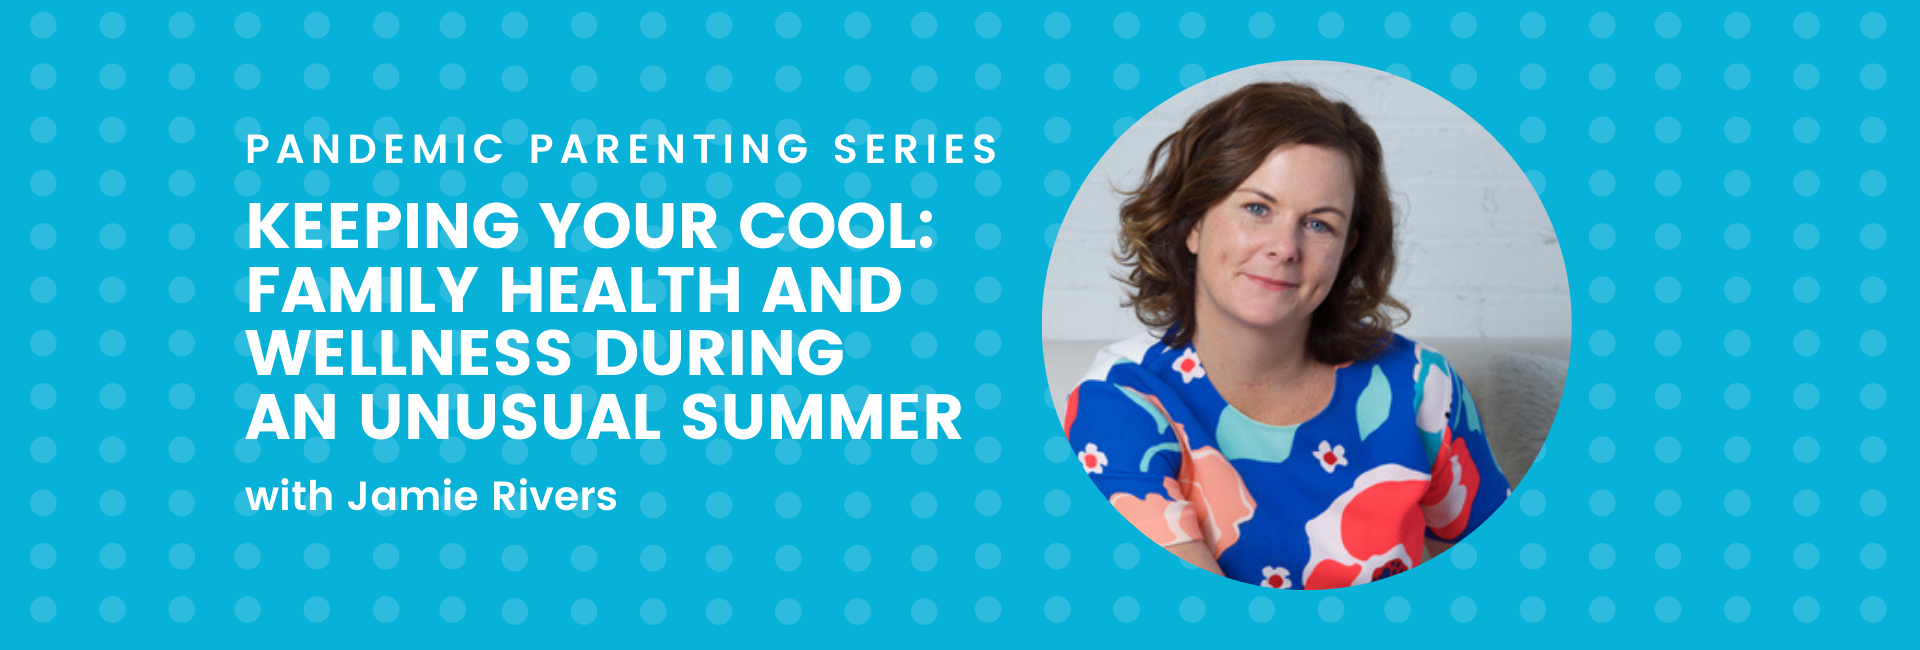 Keeping Your Cool Family Health and Wellness During an Unusual Summer